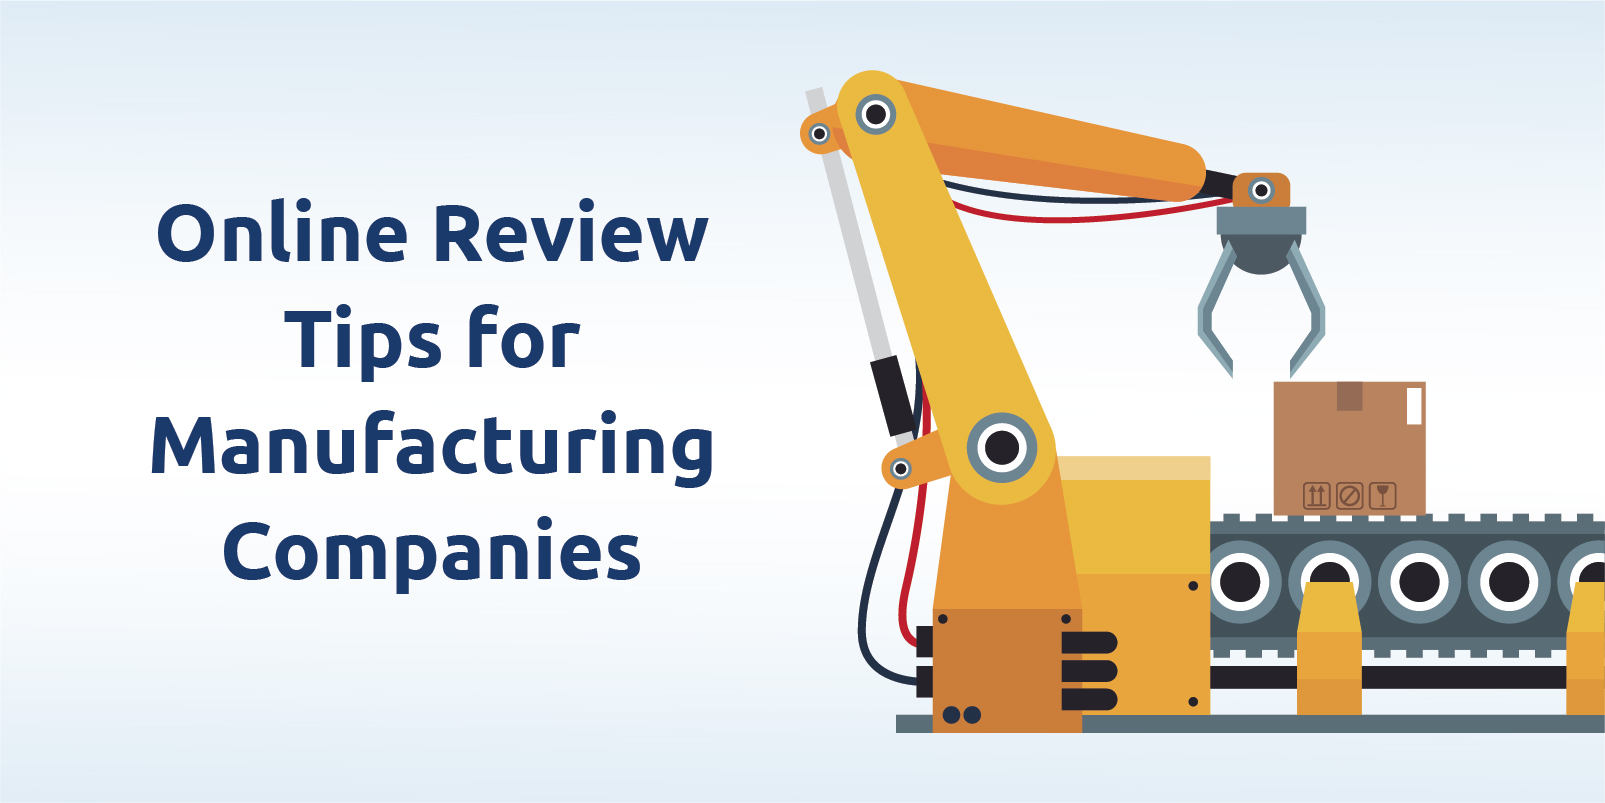 Key Online Review Tips for Manufacturing Companies